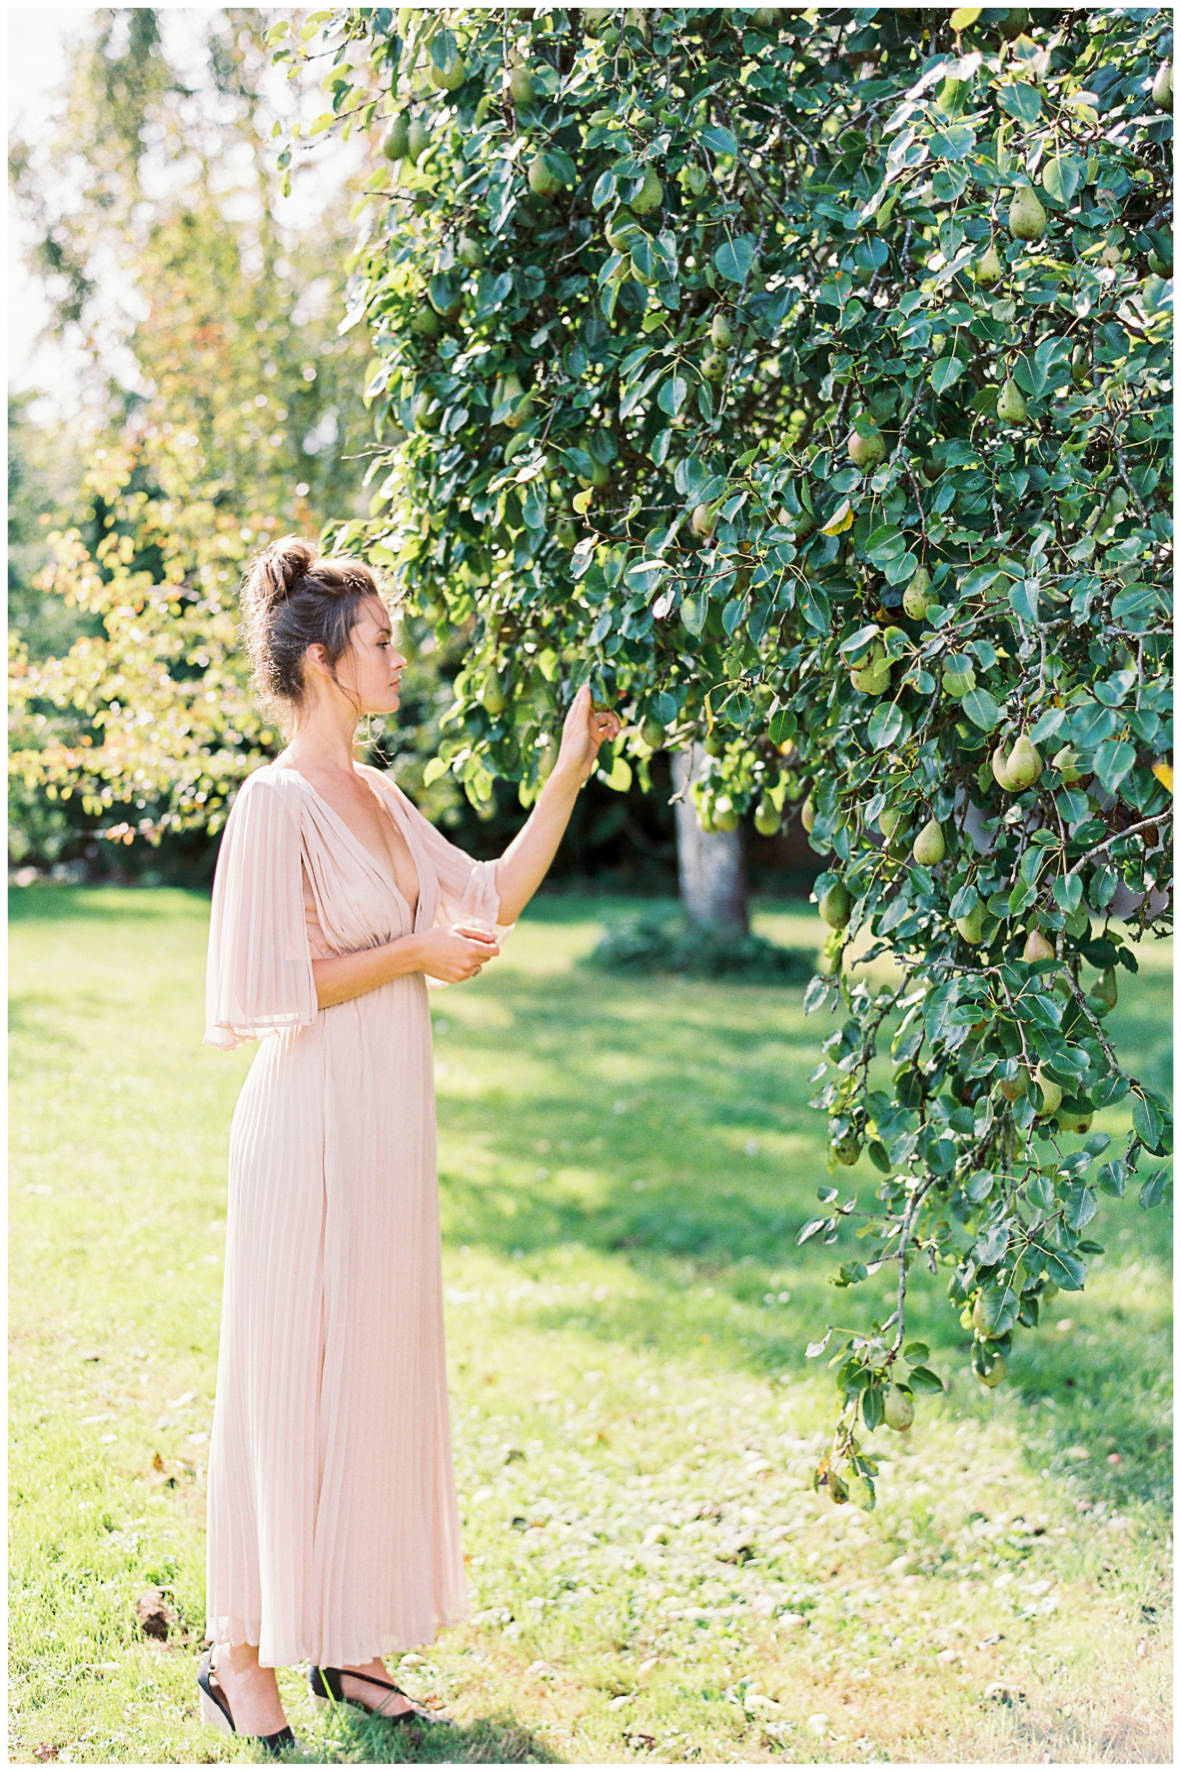 Lucy Davenport Photography, Once Wed, Home Creations, The Wedding Stylist, Verity & Thyme, picking from the pear tree, coloured dress